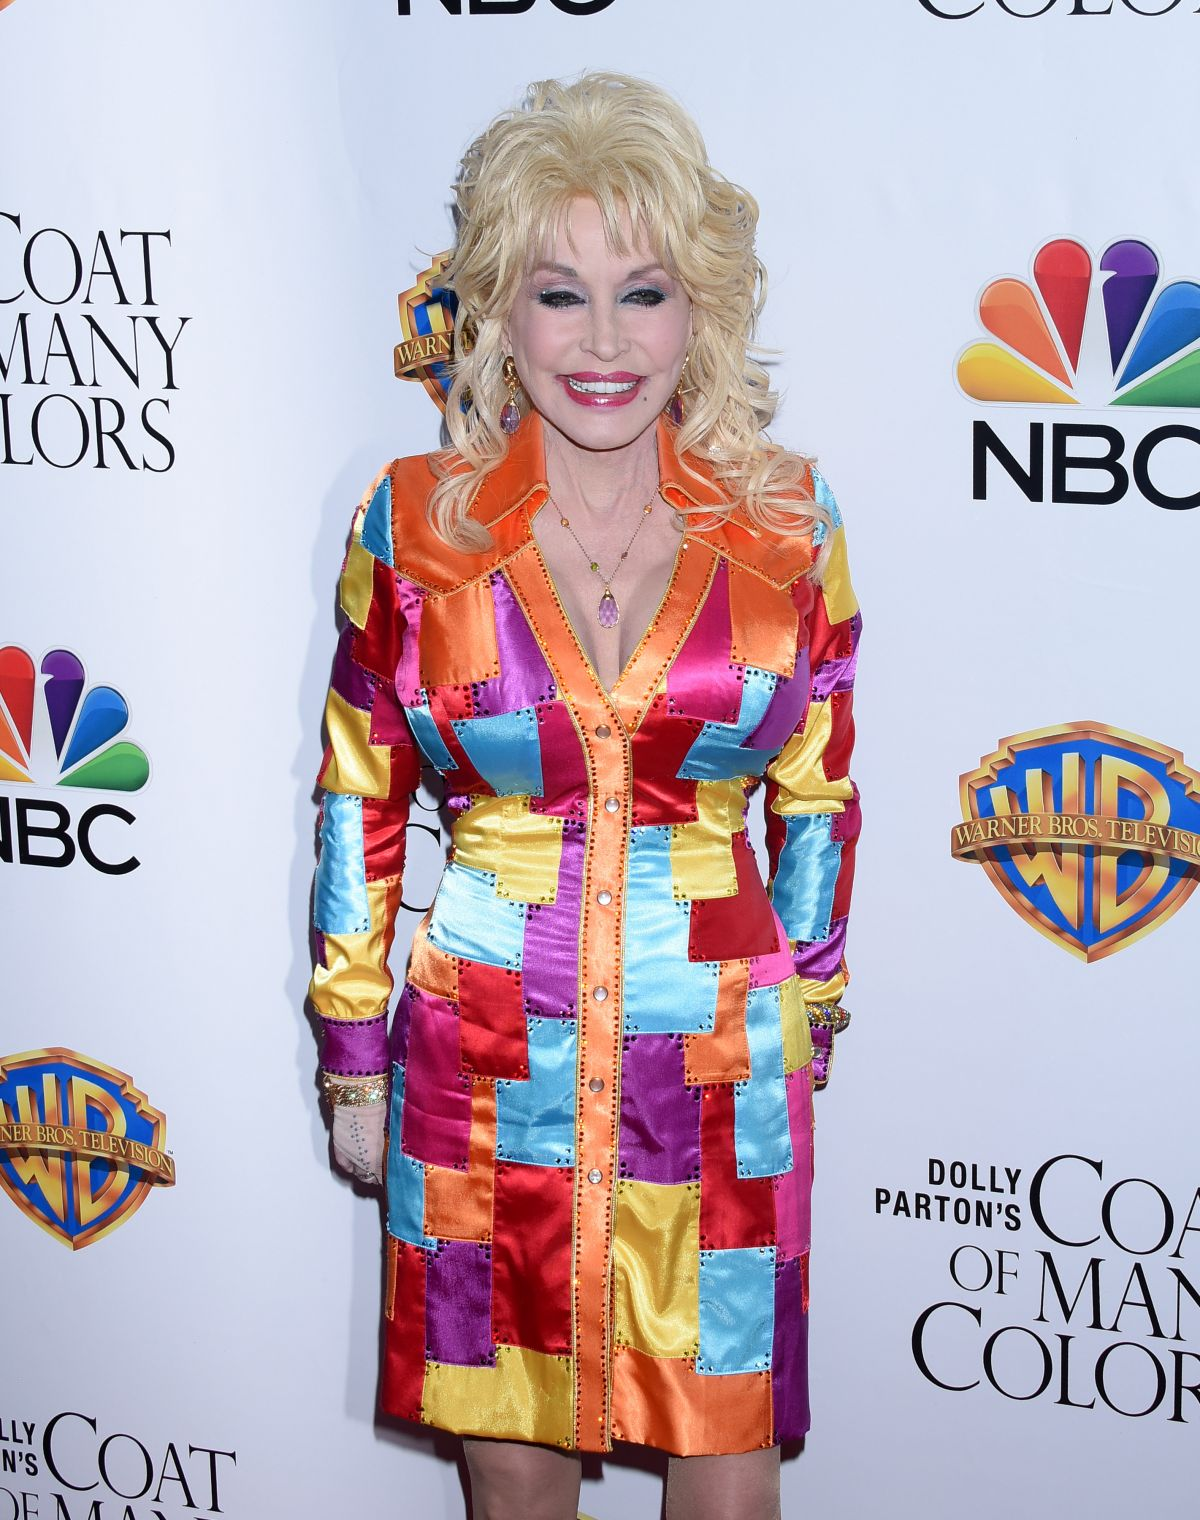 dolly-parton-at-dolly-parton-s-coat-of-many-colors-premiere-in-hollywood_1.jpg